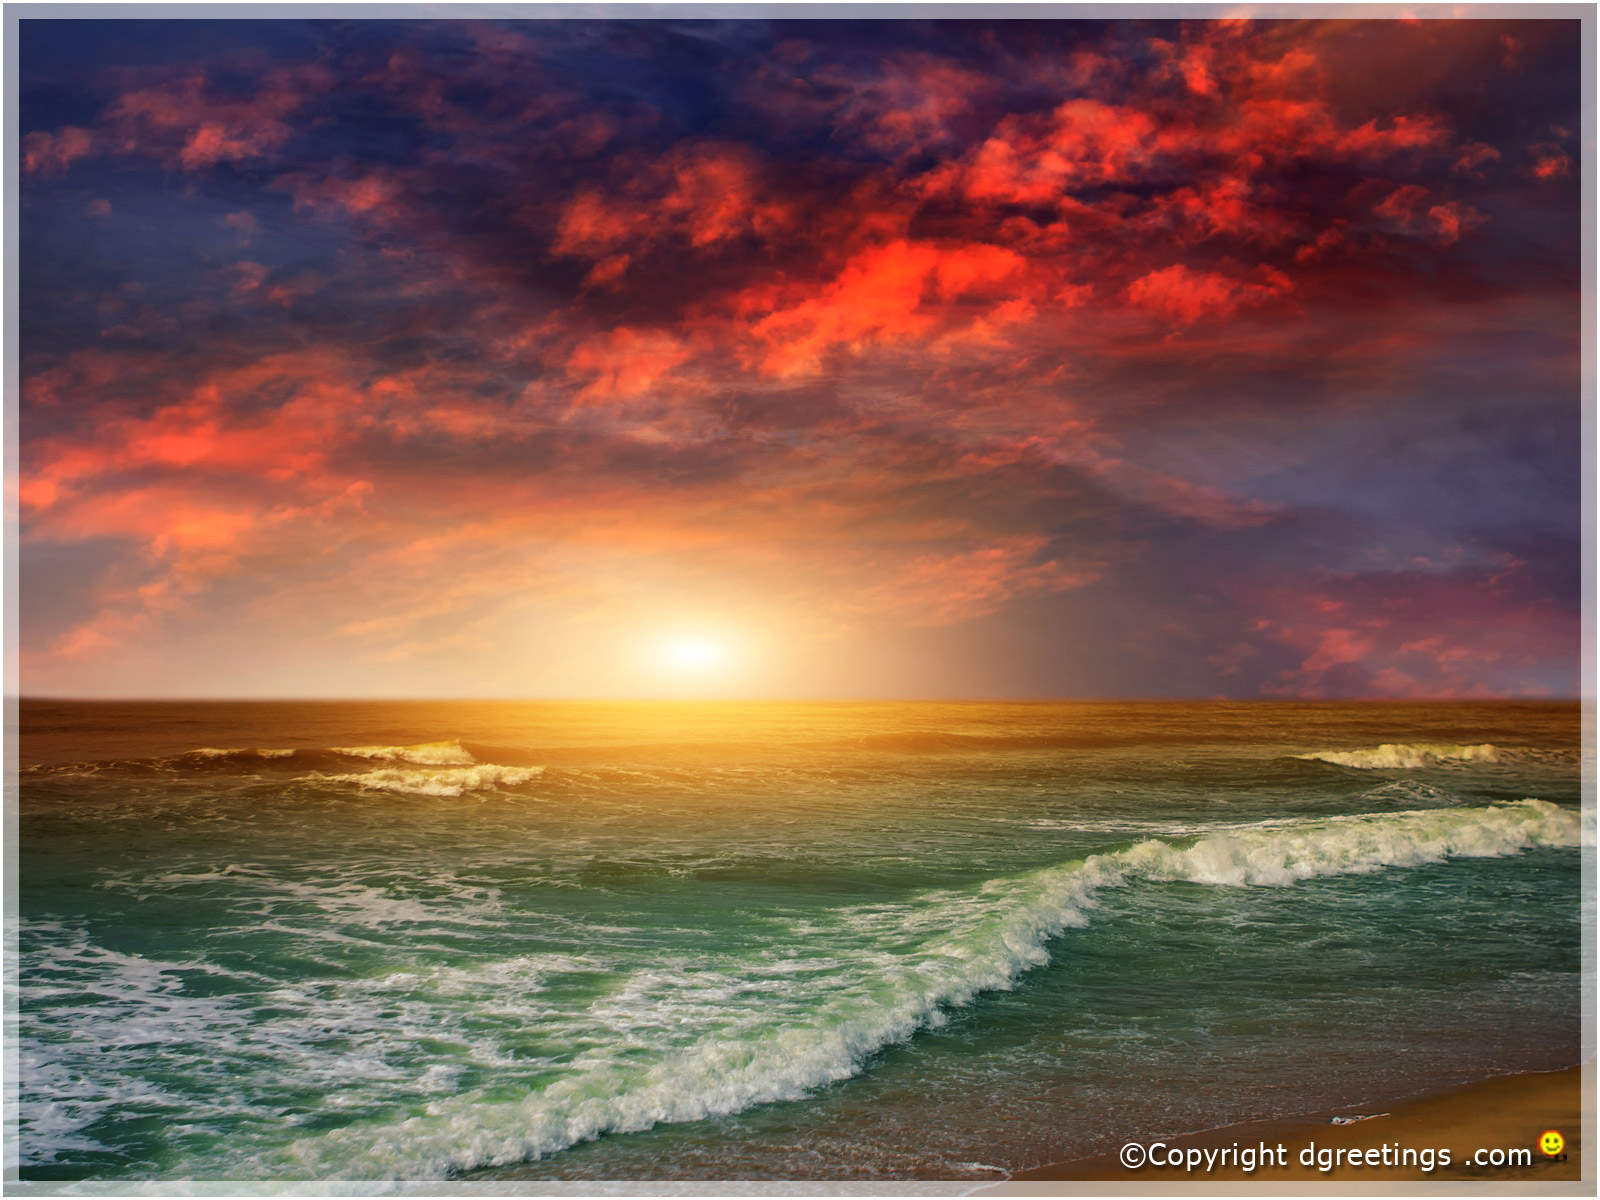 Desktop wallpapers on Ocean dgreetingscom 1600x1200